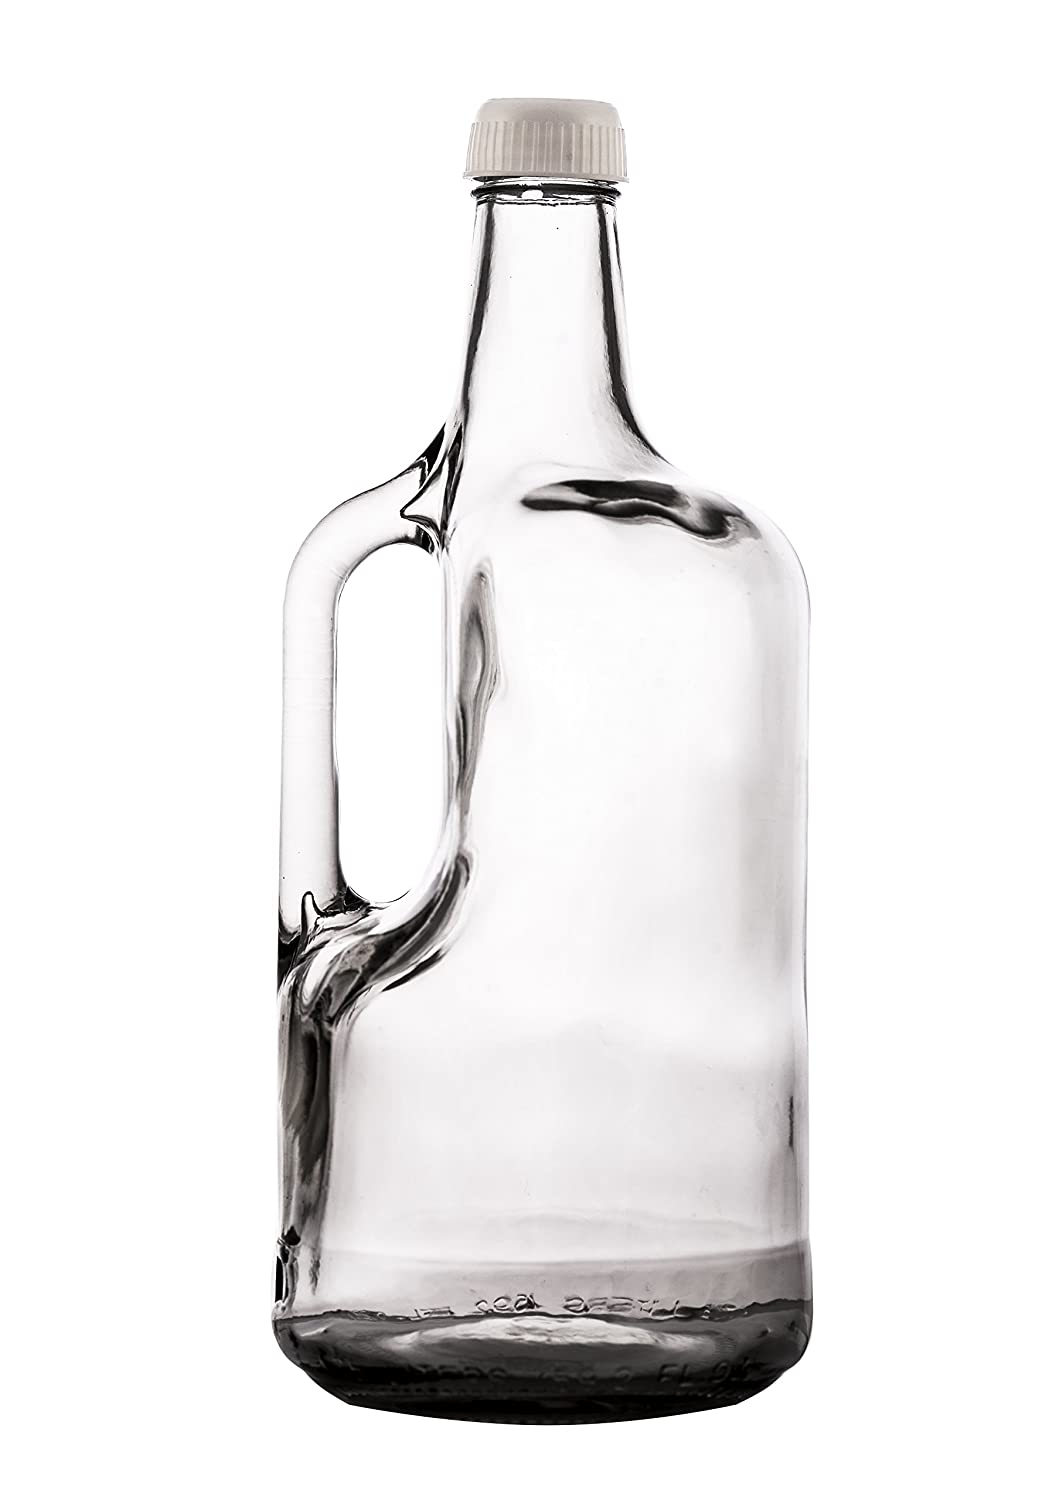 Amazon.com: SafePro 1750, 0.75L / 25.4-ounce Clear Glass Bottle with Handle and Screw Lid, Vintage Style Bottle for Milk Water Oil Vinegar, Glass Bottle ...